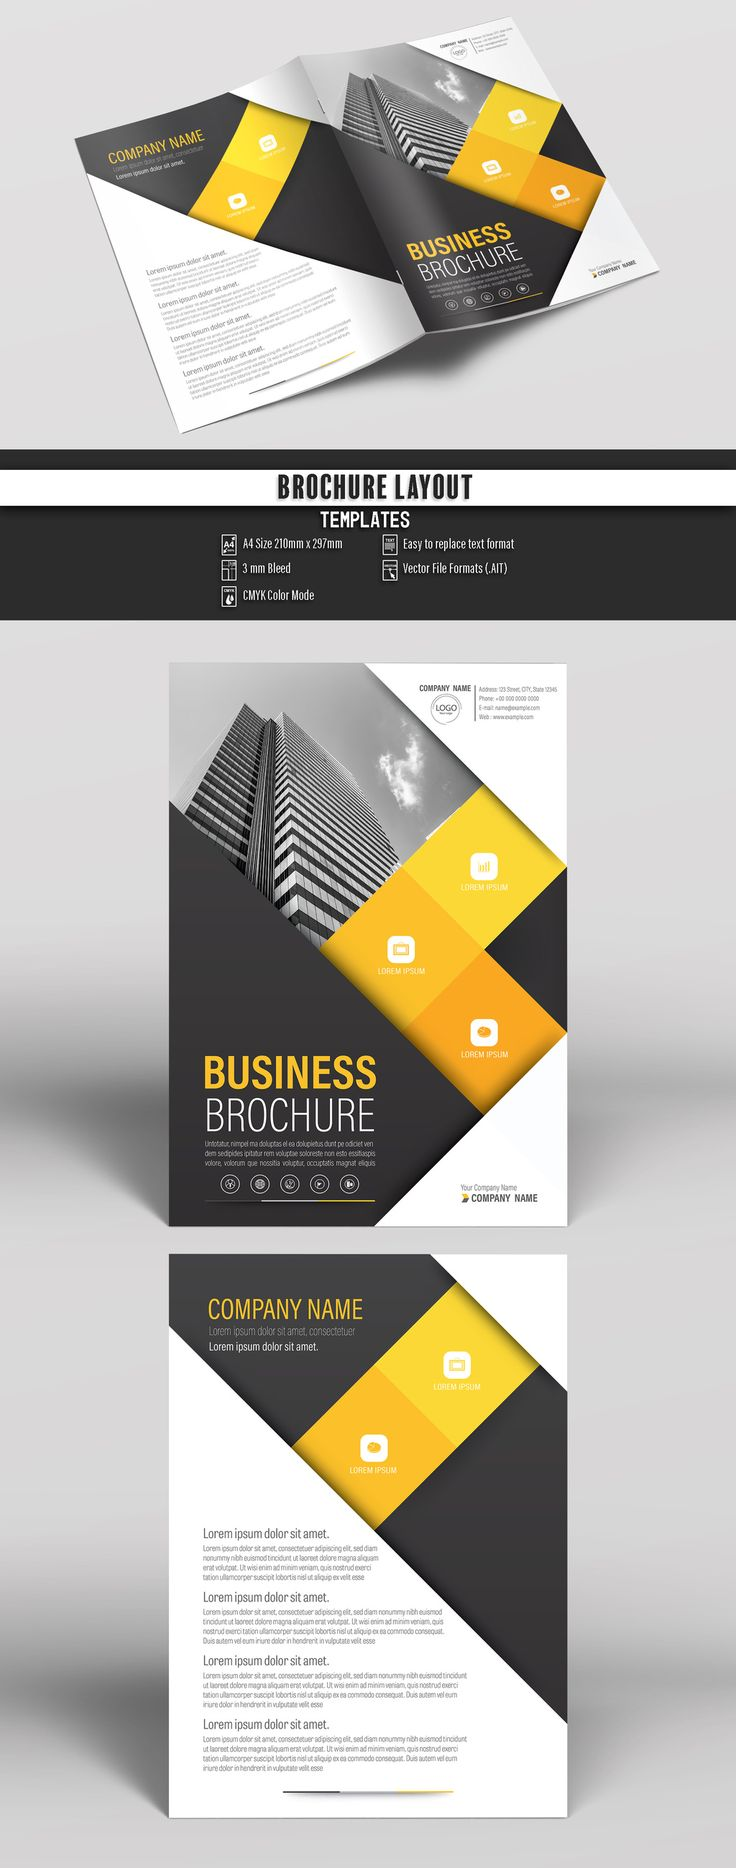 Brochure Cover Layout with Black and Yellow Accents 1. Buy this stock template and explore similar templates at Adobe Stock | Adobe Stock  #Brochure #Business #Proposal #Booklet #Flyer #Template #Design #Layout #Cover #Book #Booklet #A4 #Annual #Report| Brochure template | Brochure design template | Flyers | Template | Brochures | Flyer Background | Background design | Business Proposal | Proposal Design | Booklet | Professional | Professional - Proposal - Brochure - Template